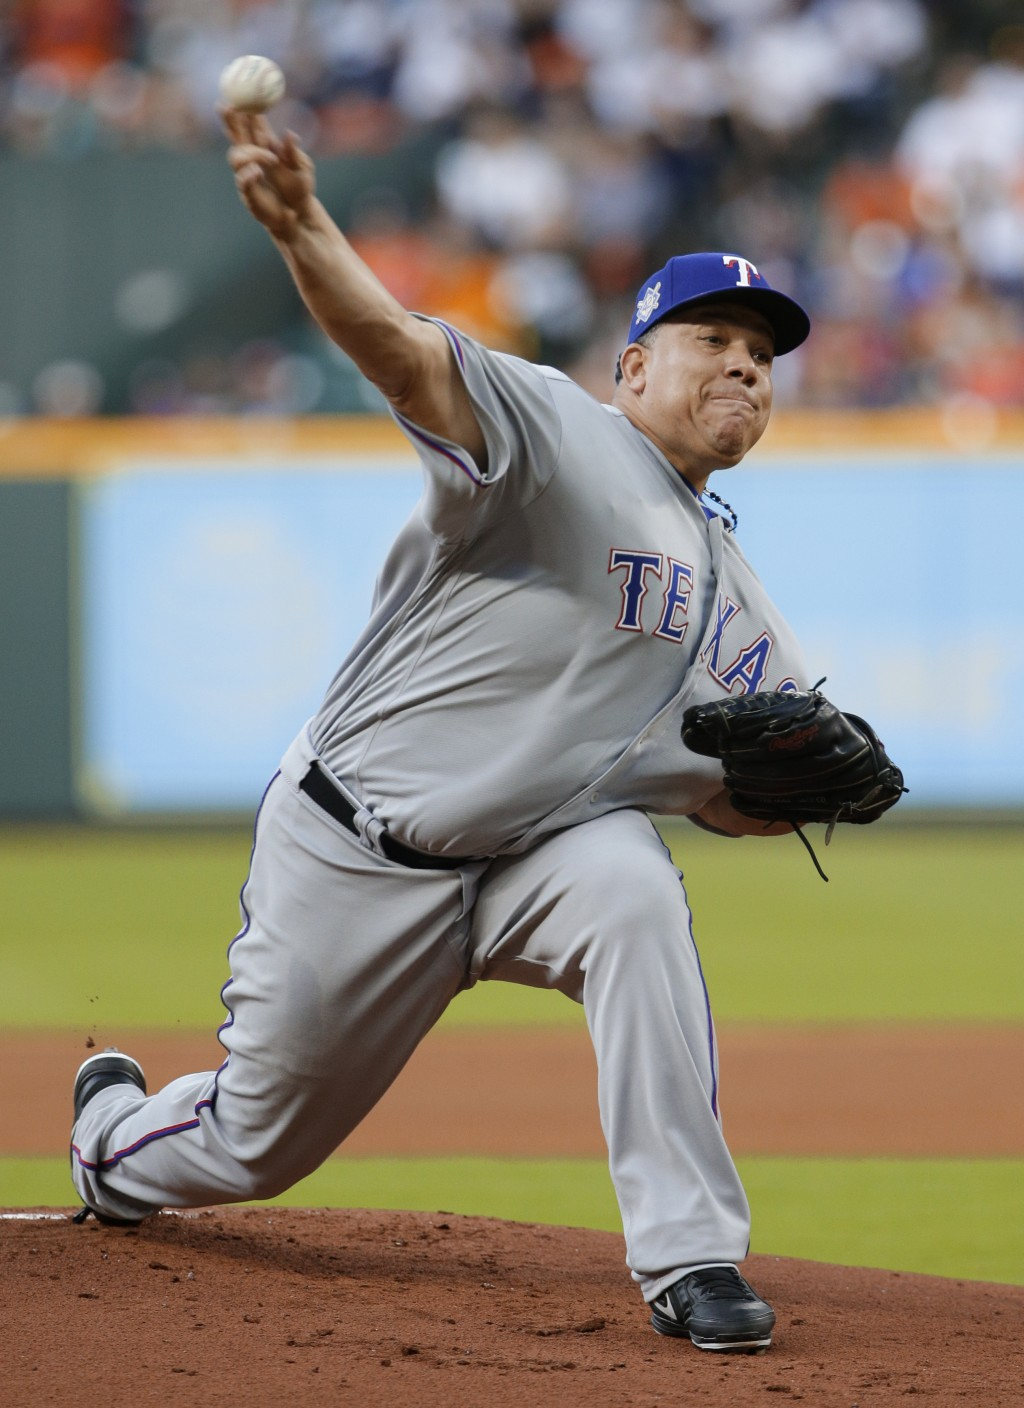 Texas Rangers' starting pitcher Bartolo Colon throws against the Houston Astros during the first inning of a baseball game Sunday, April 15, 2018, in